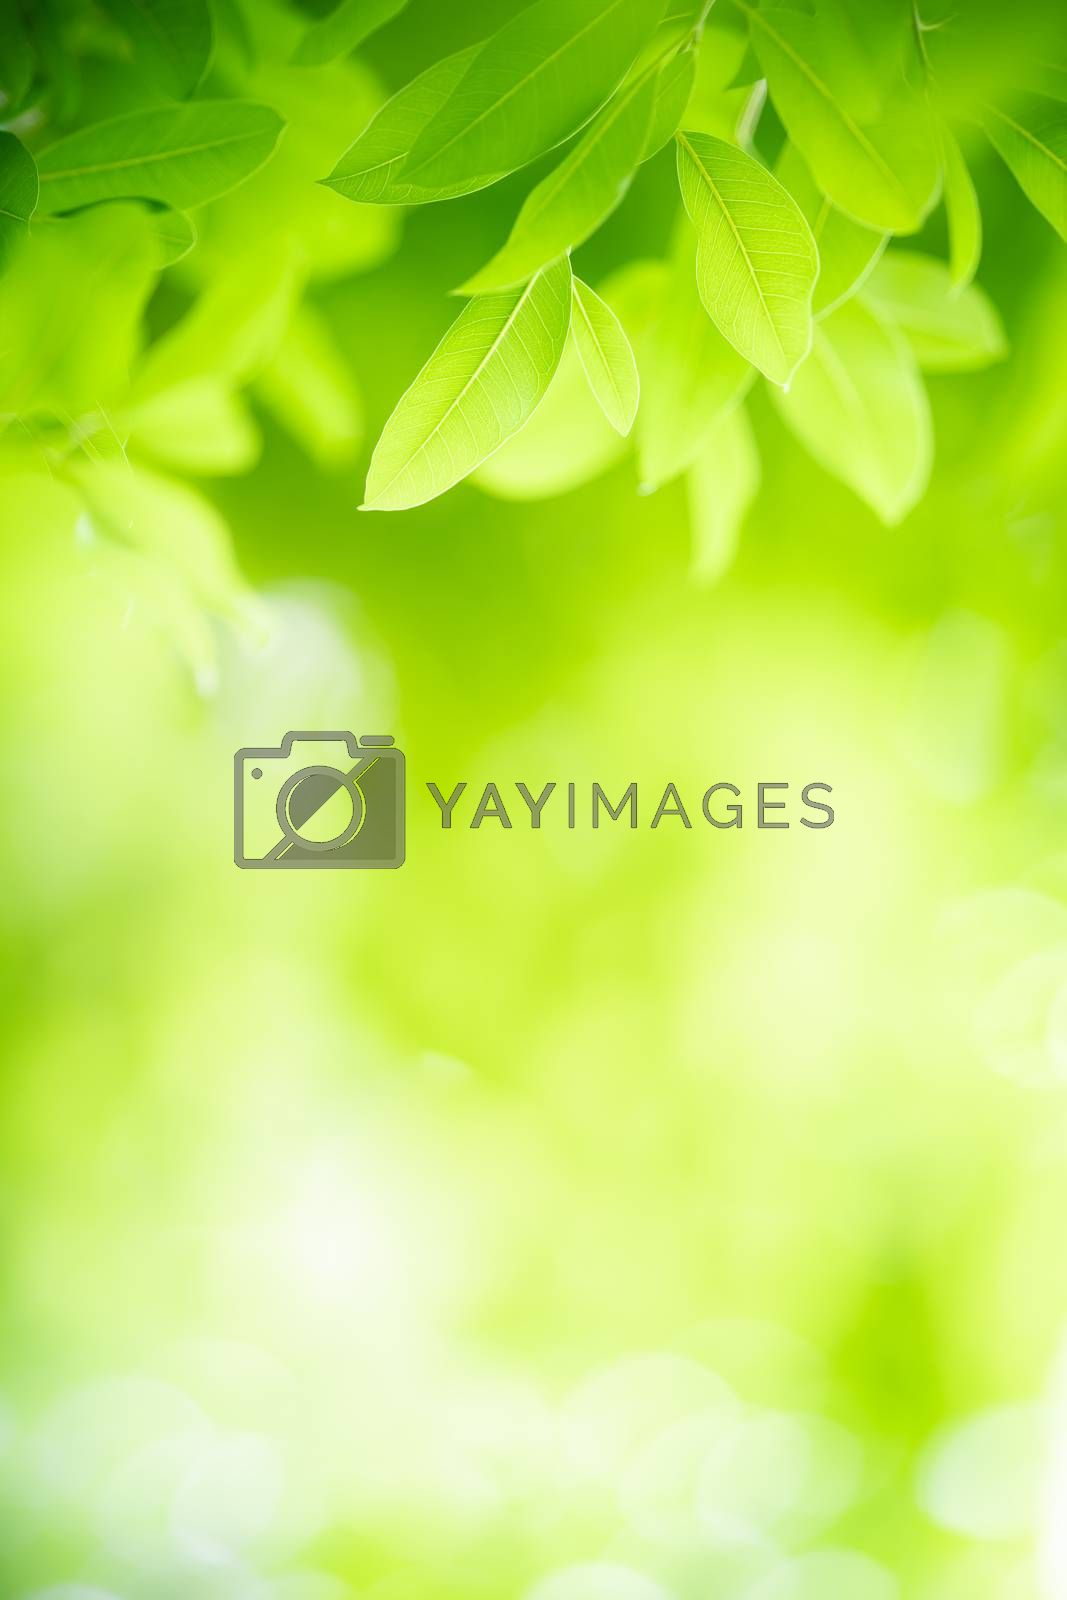 Beautiful nature view of green leaf on blurred greenery background in garden with copy space using as background natural green leaves plants landscape, ecology, fresh wallpaper concept.